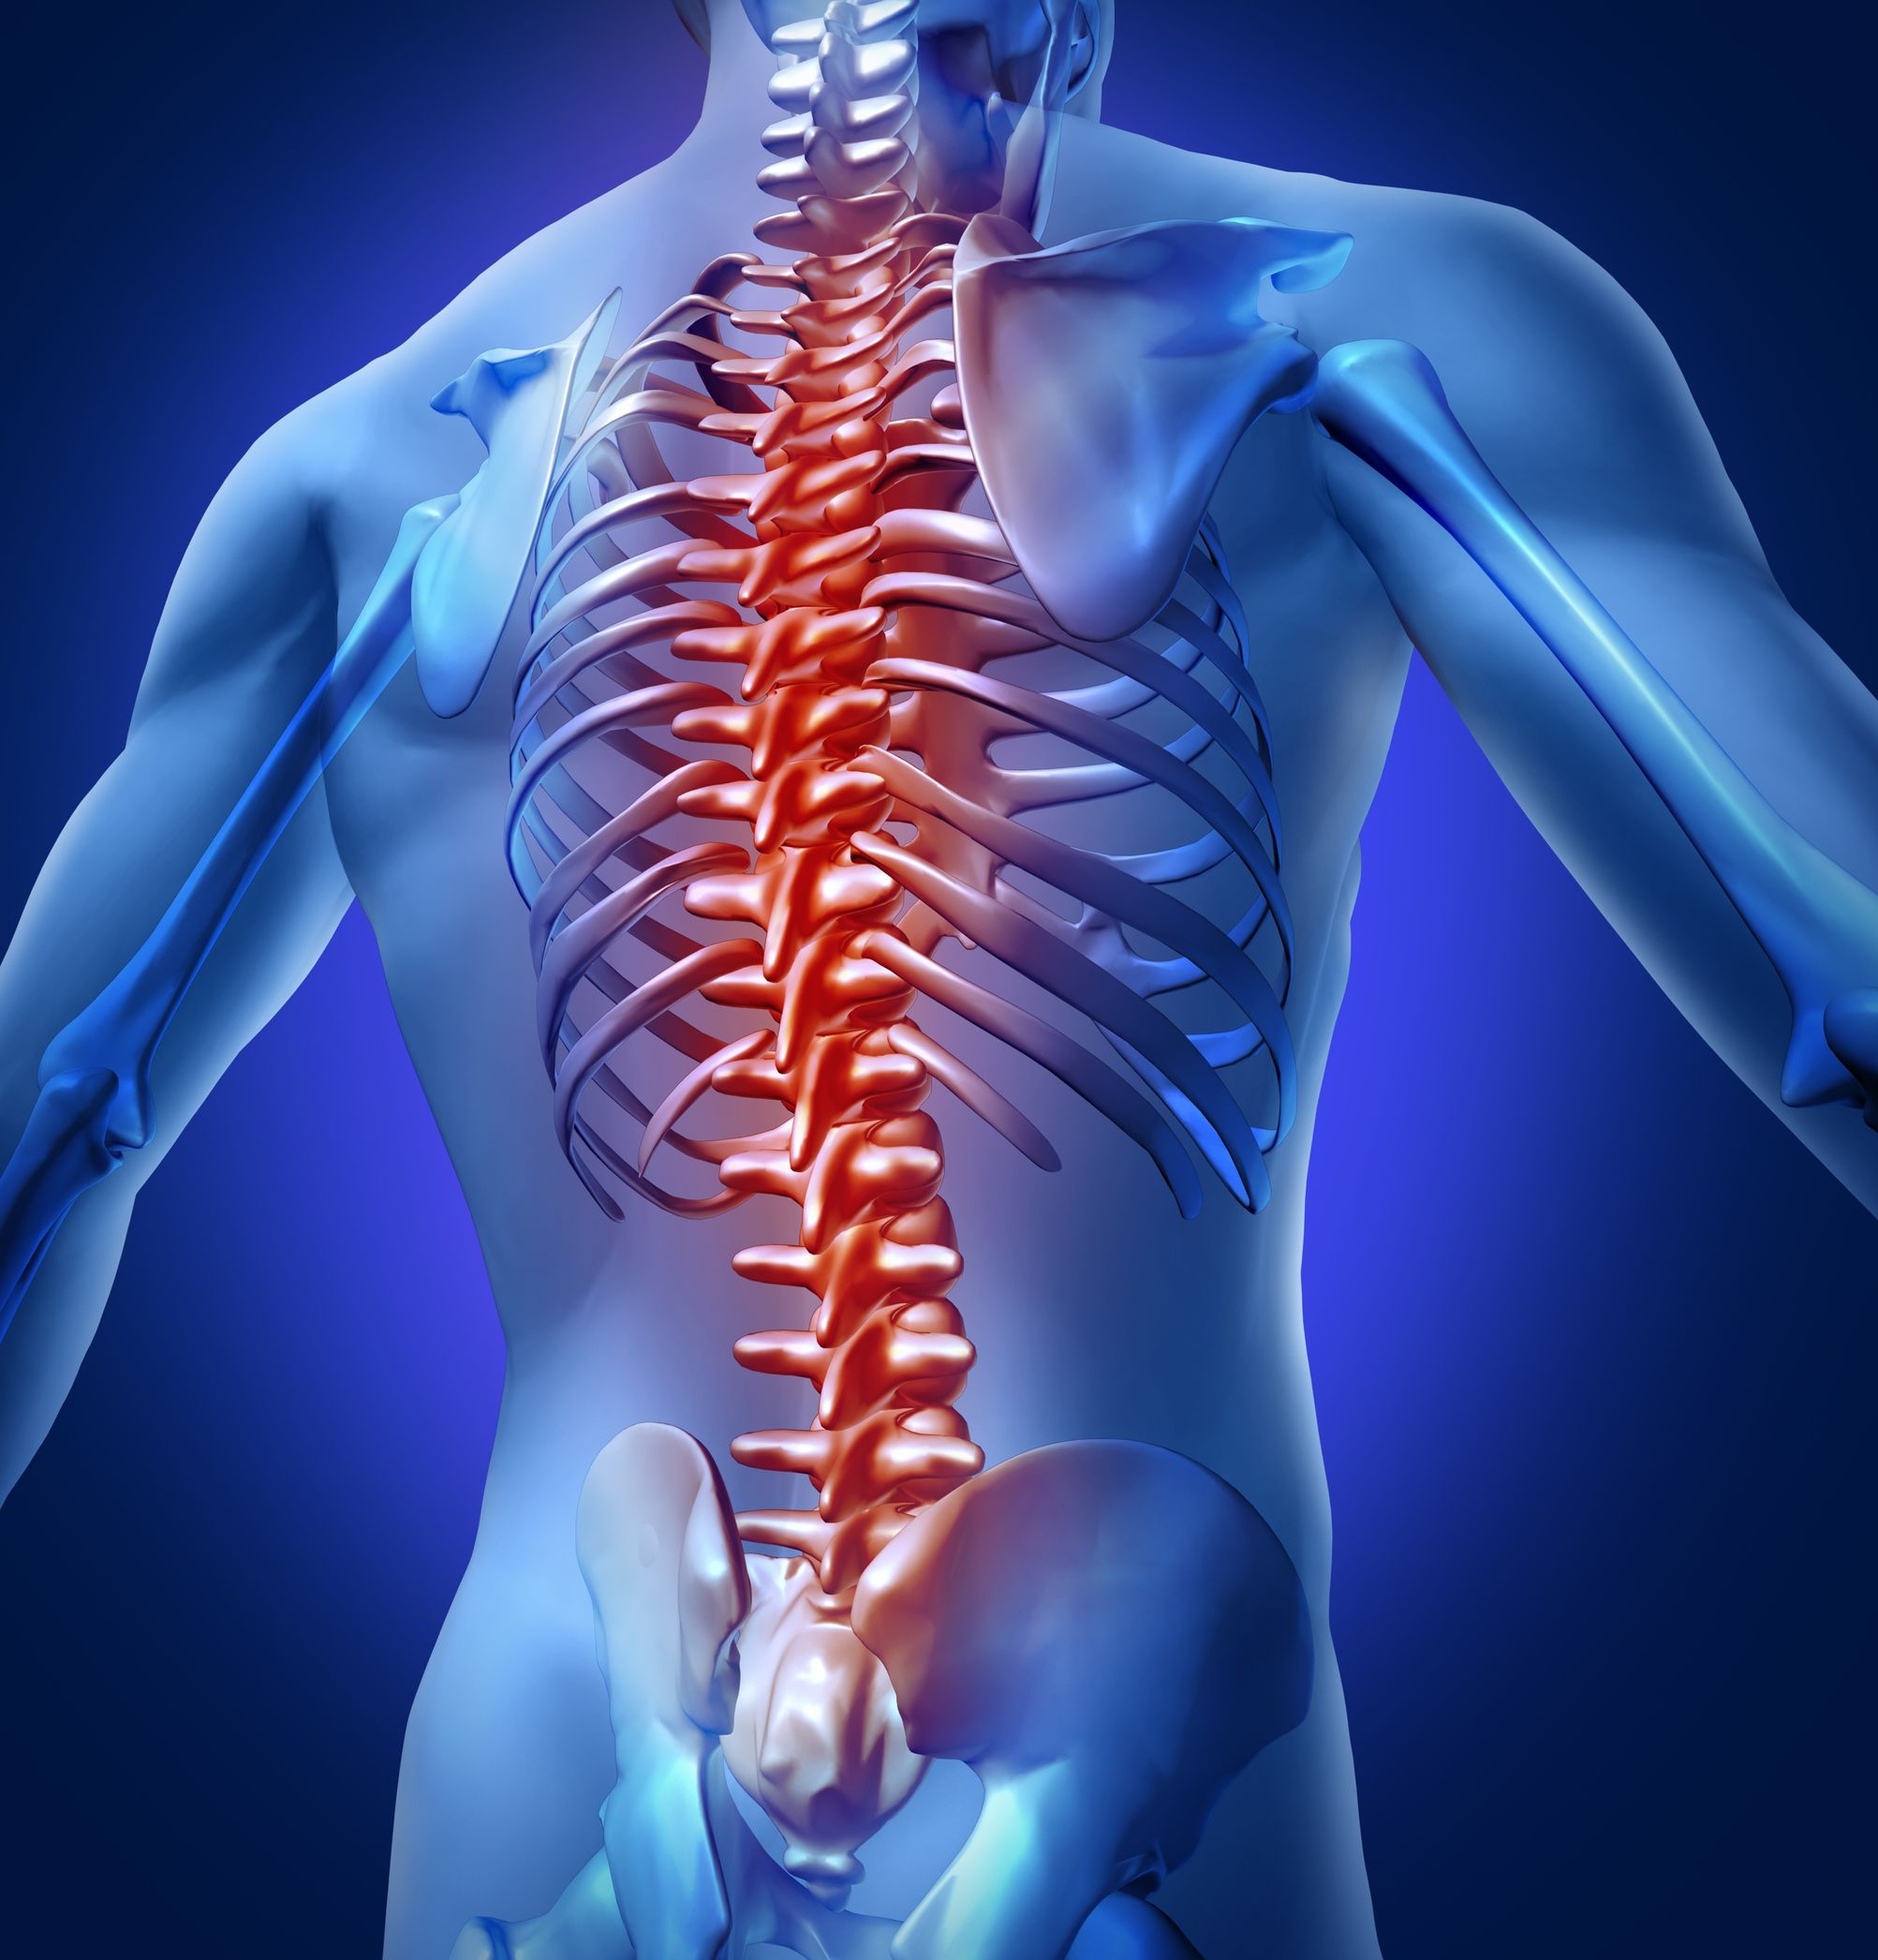 12353993 - human backache and back pain with an upper torso body skeleton showing the spine and vertebral column in red highlight as a medical health care concept for spinal surgery and therapy.